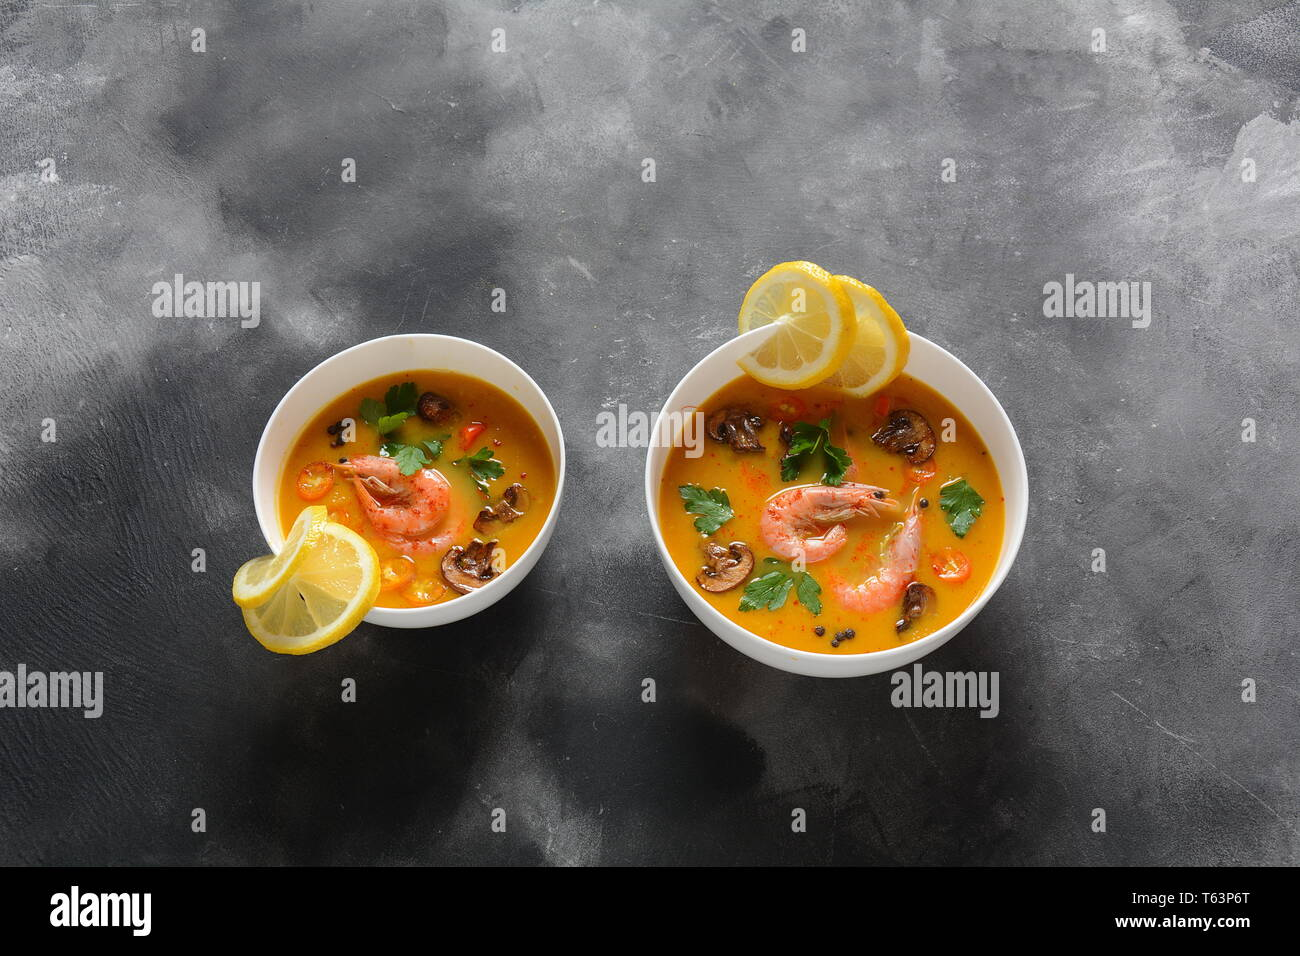 Tom Yum -traditional spicy Thai soup with coconut milk, chili pepper, lemon, mushrooms. Asian soup - Stock Image